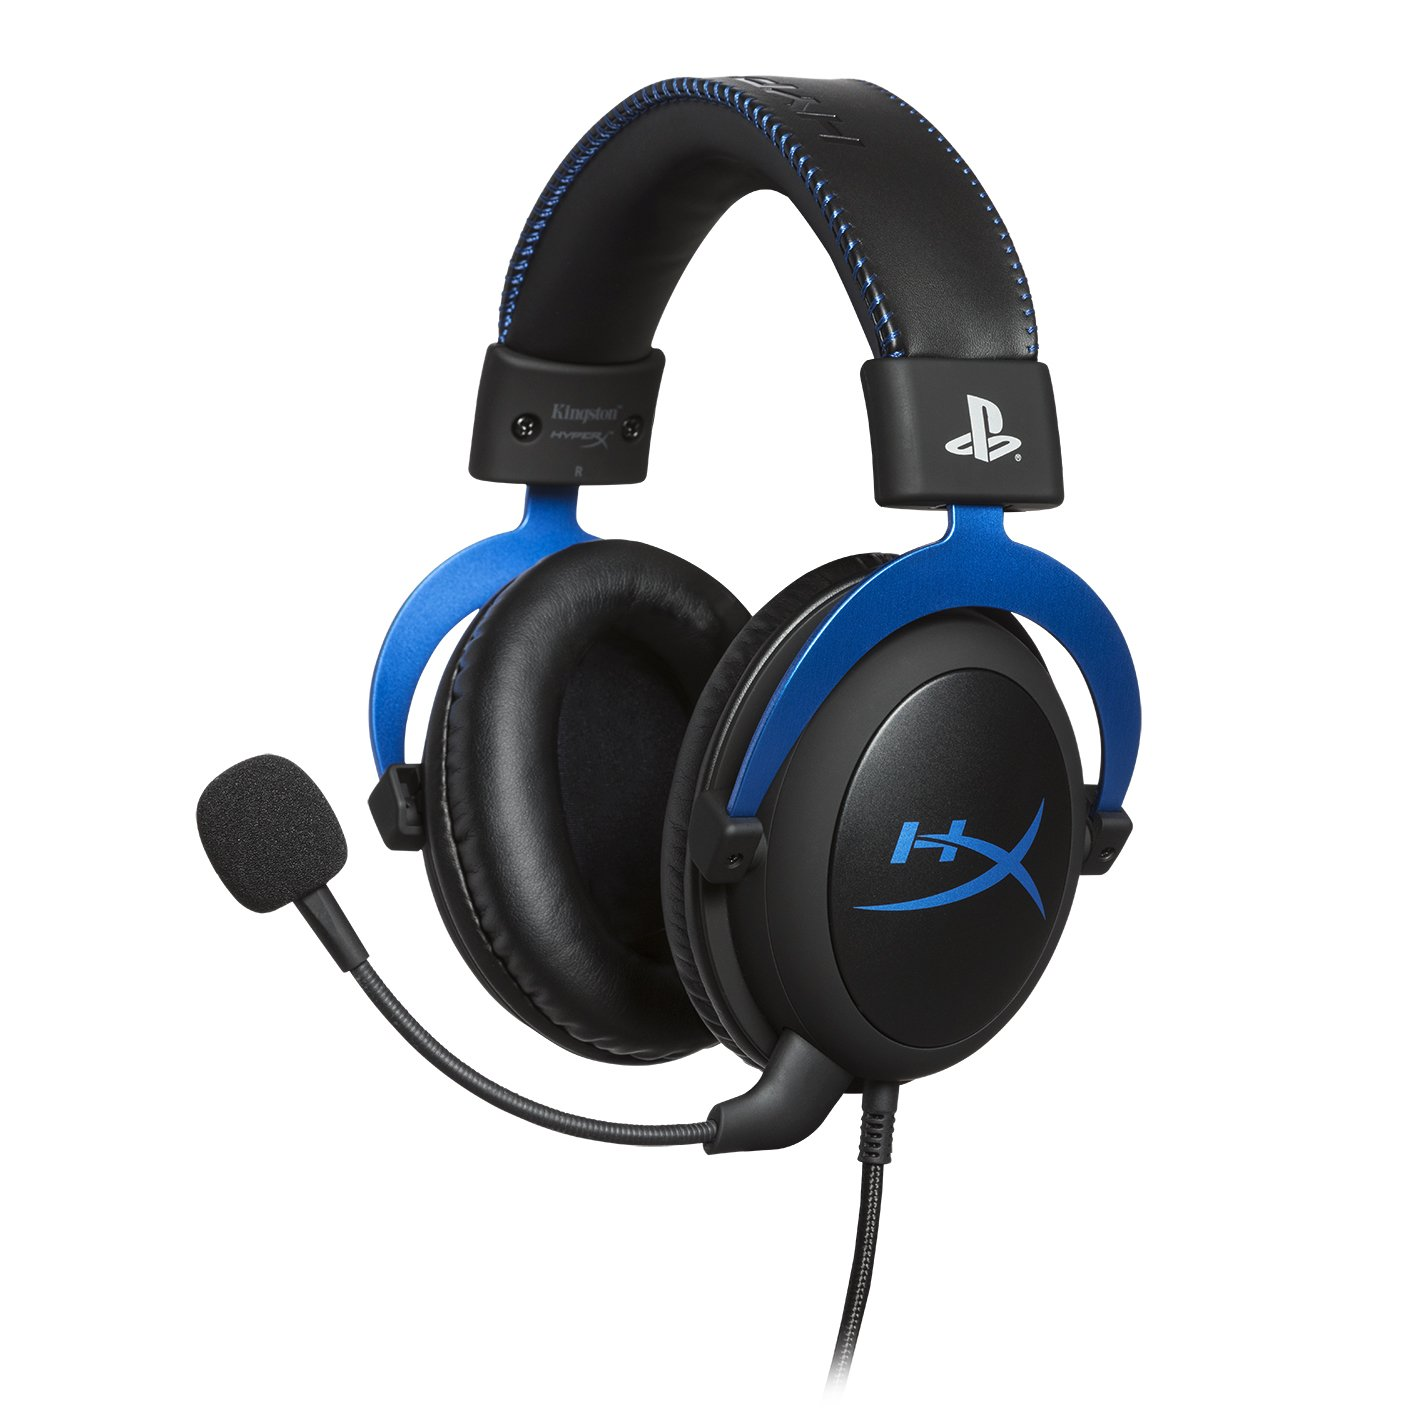 HyperX Cloud - Official Playstation Licensed Gaming Headset for PS4 with in-Line Audio Control, Detachable Noise Cancelling Microphone, Comfortable Memory Foam - Black by HyperX